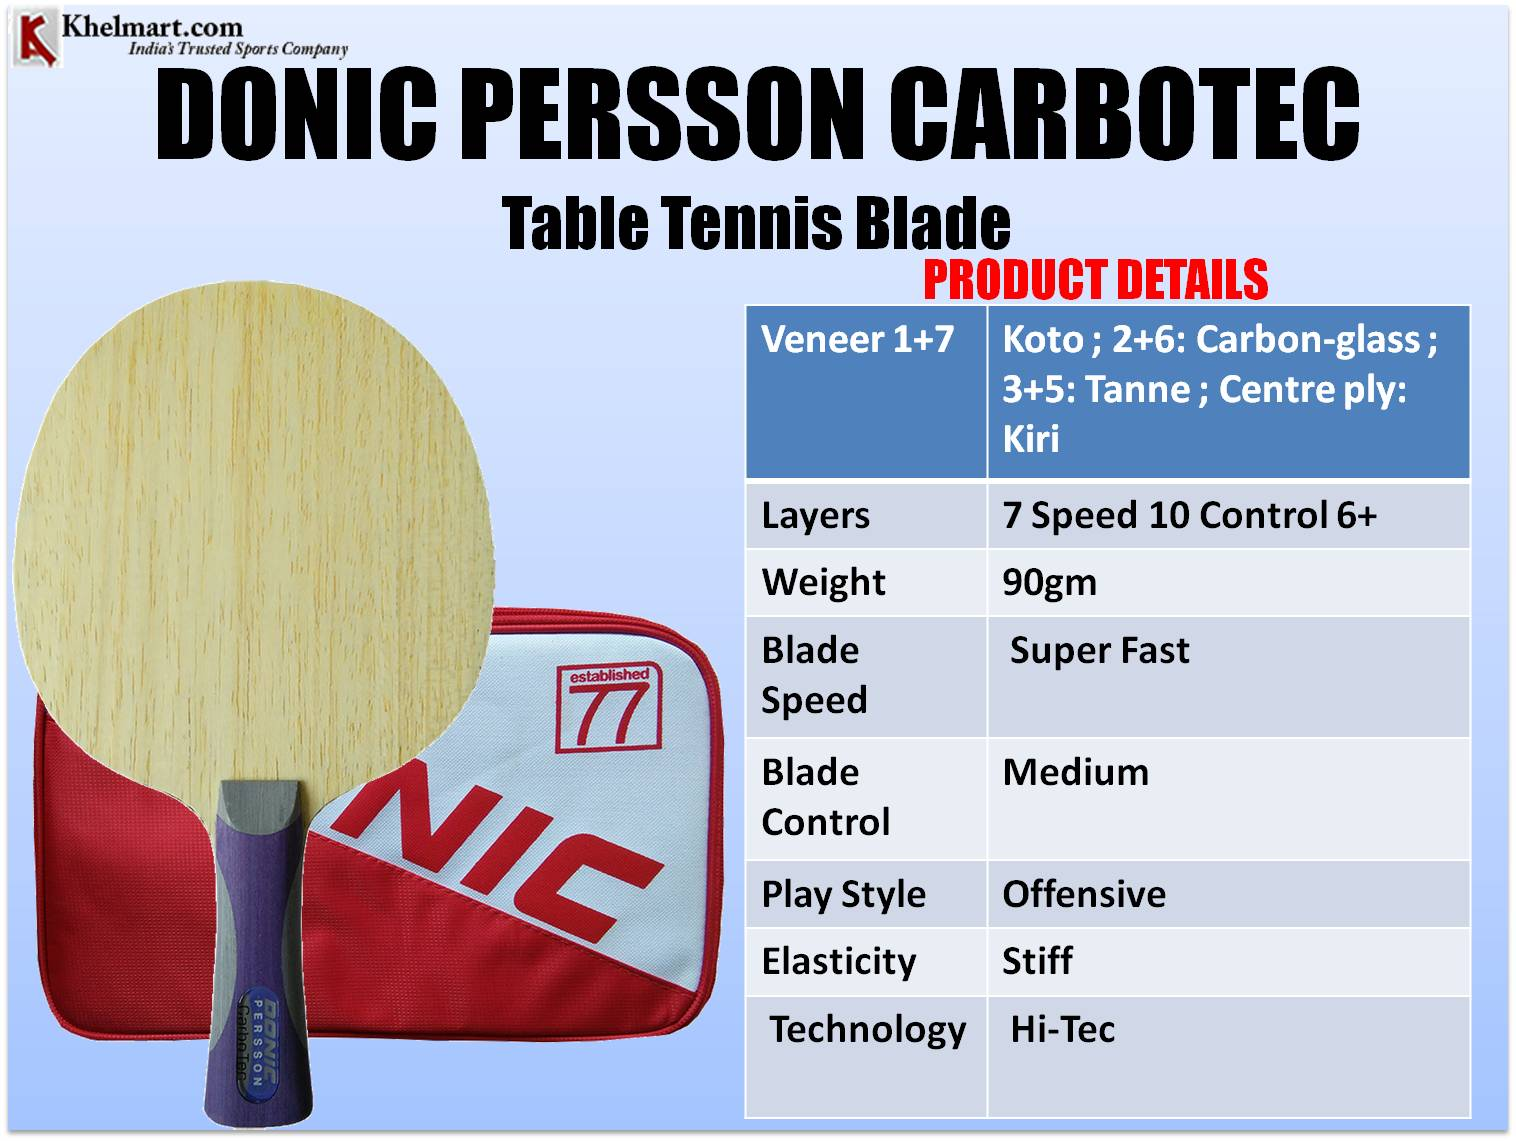 DONIC_PERSSON_CARBOTEC_Table_Tennis_Blade.jpg